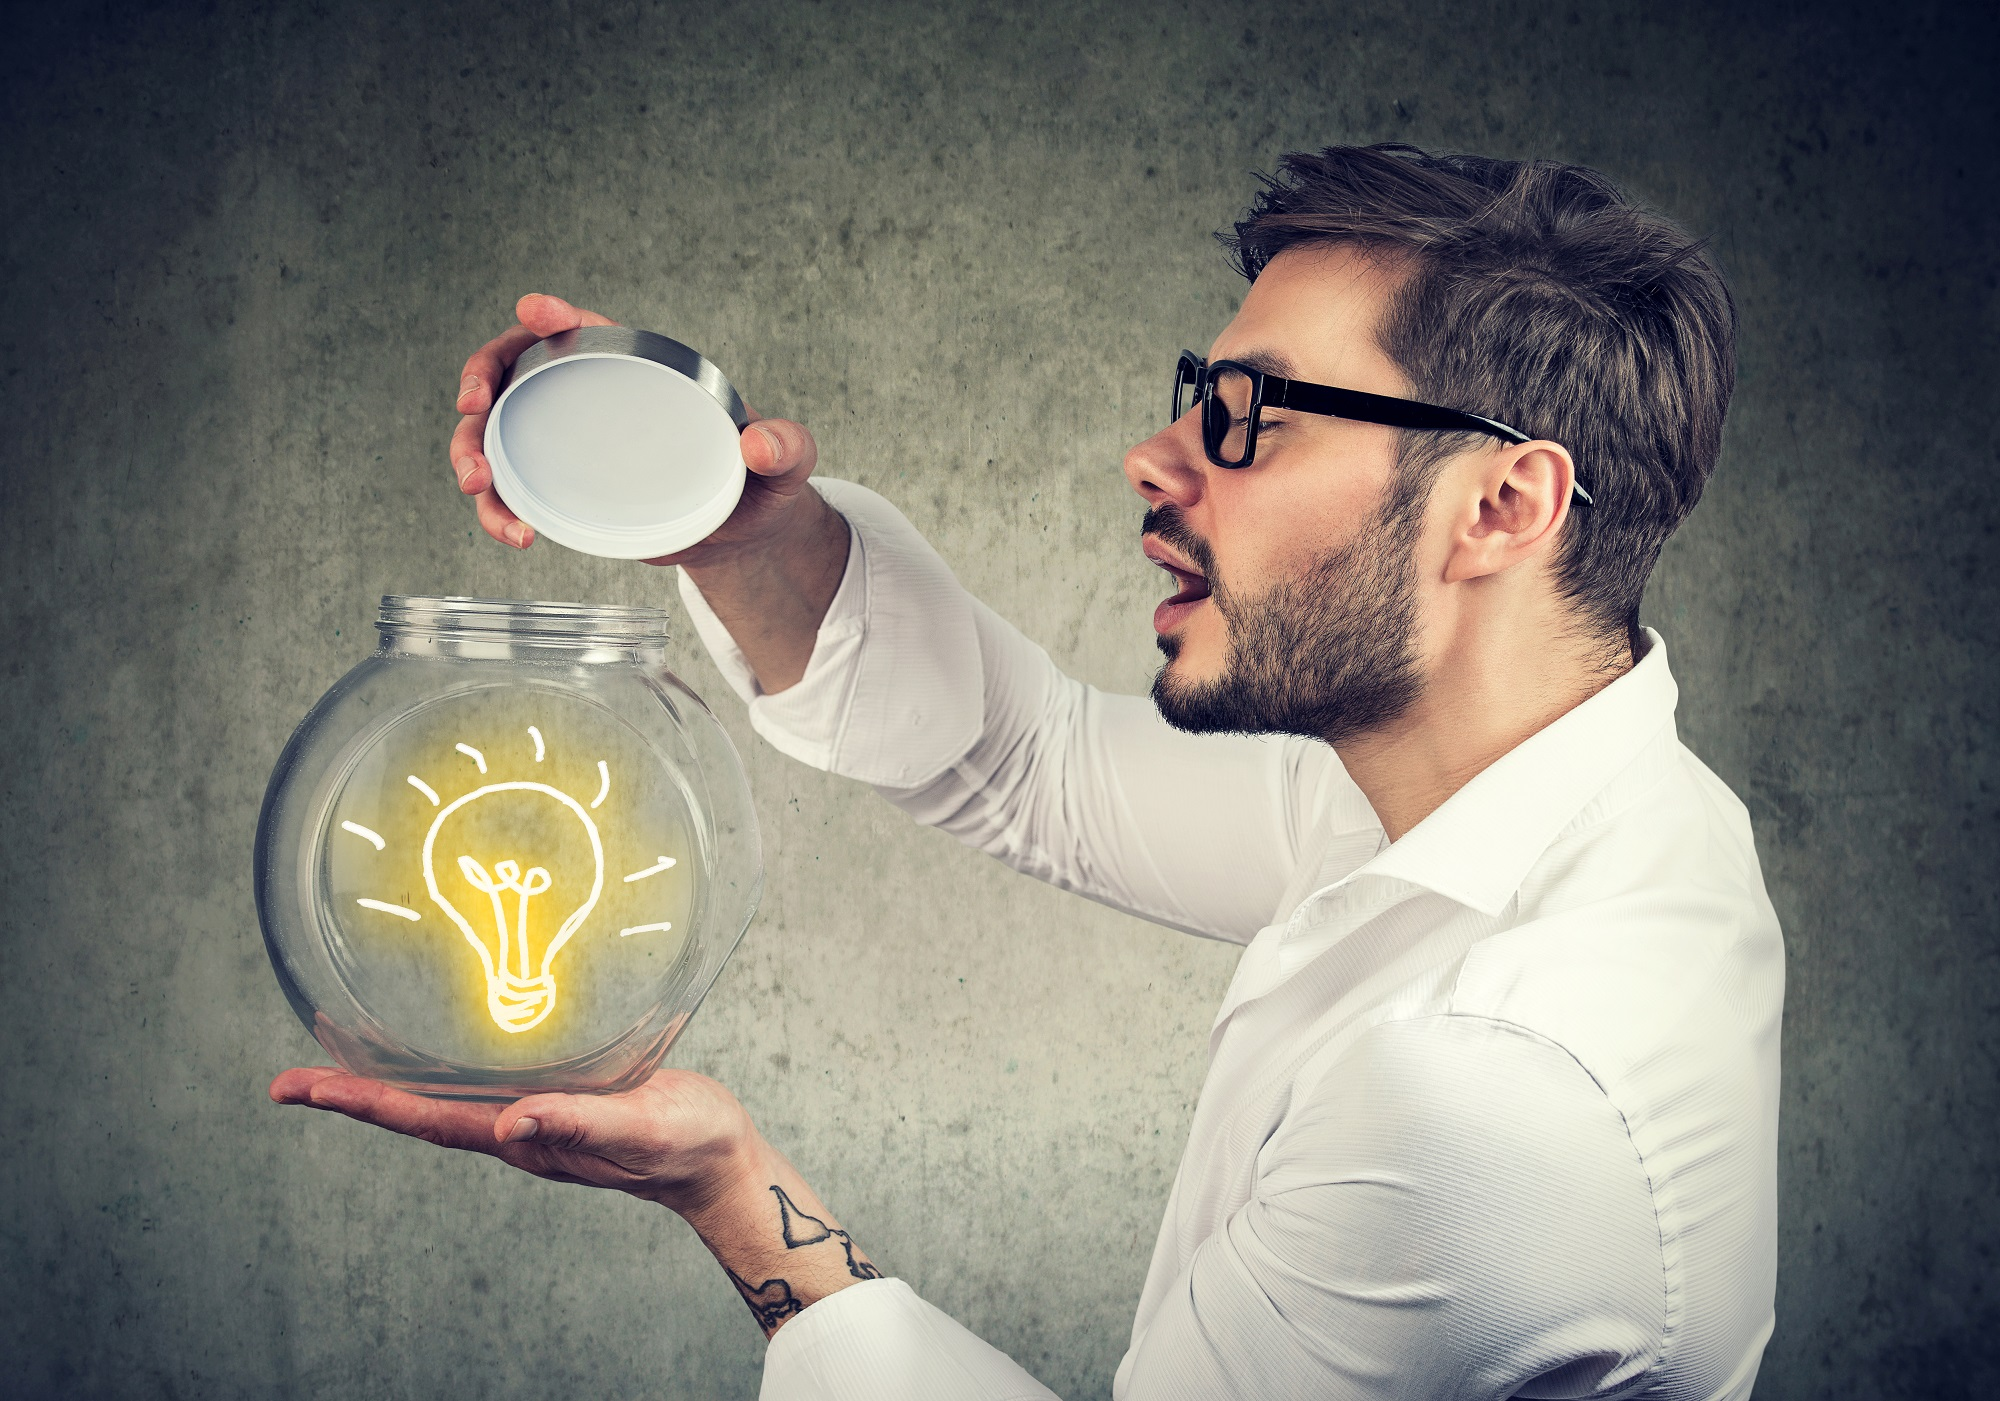 Excited Man Holding Opening A Glass Jar With Bright Idea Lighbulb Inside